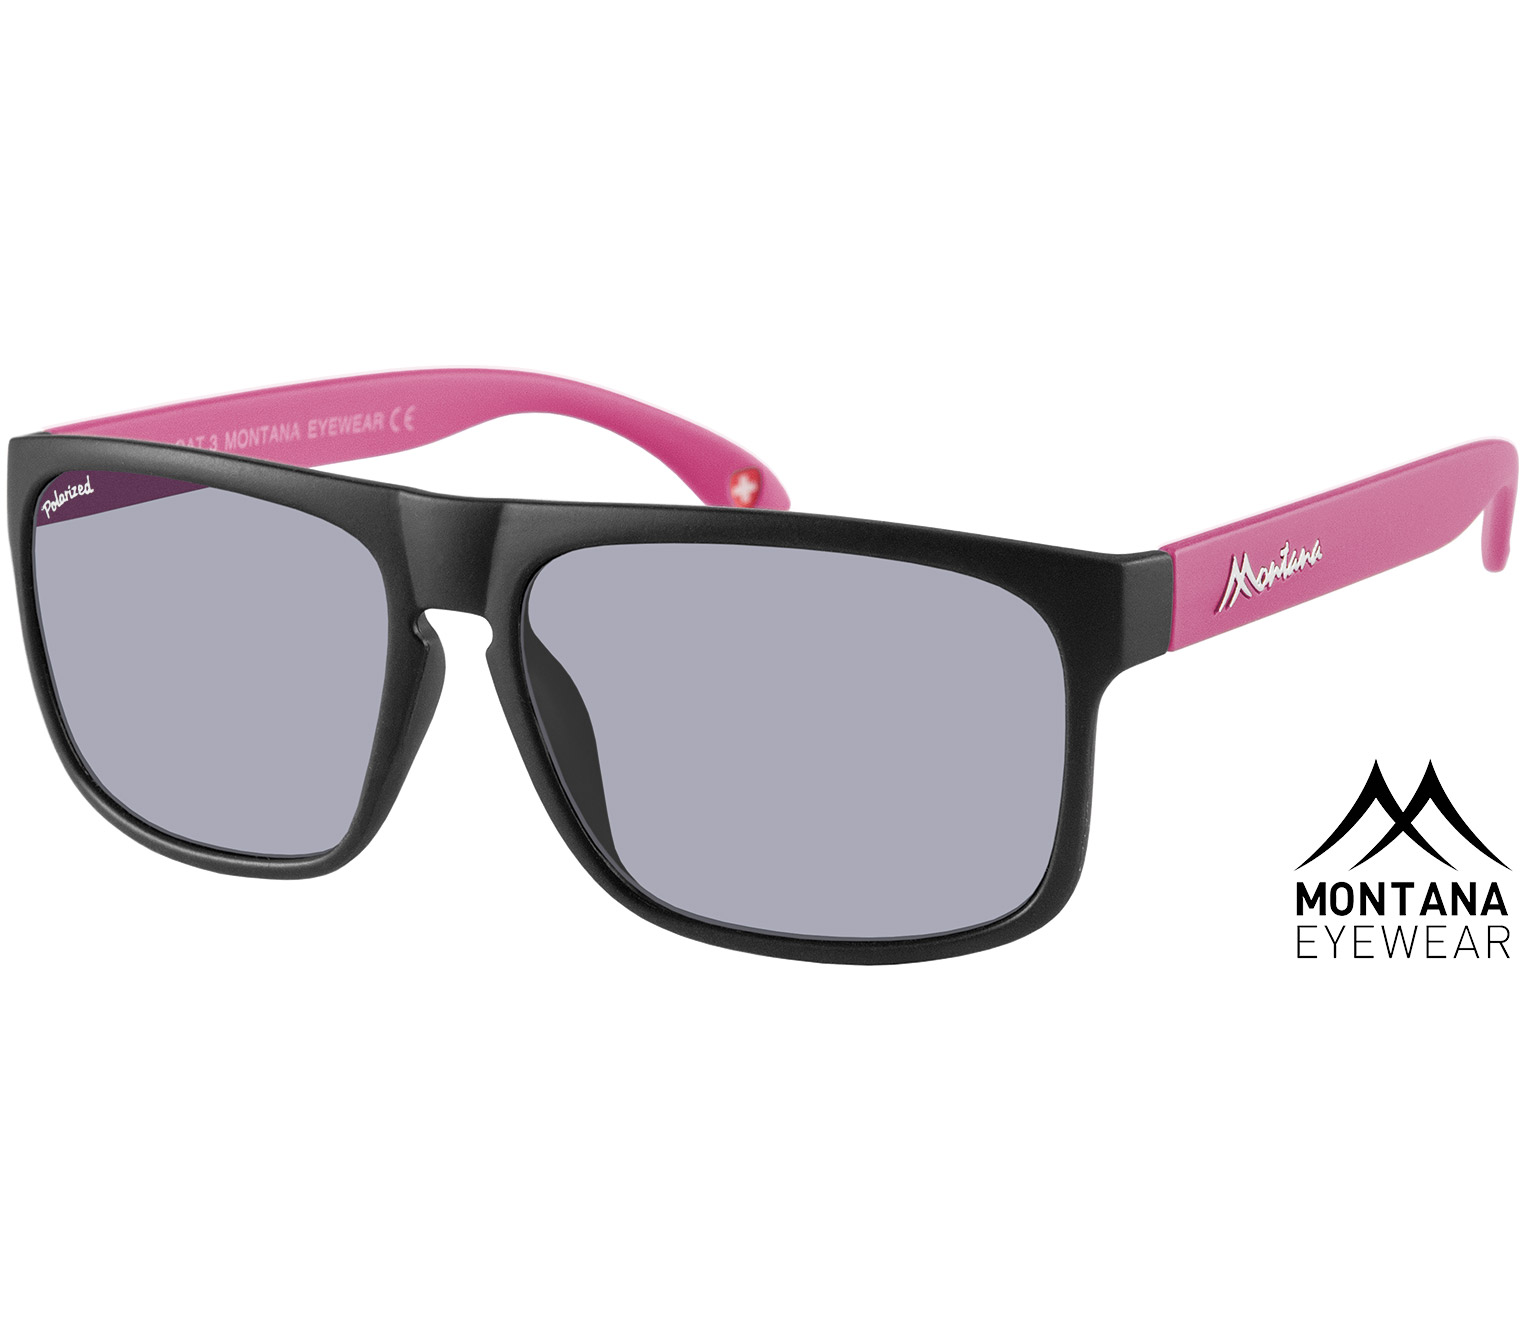 Main Image (Angle) - Radar (Pink) Retro Sunglasses